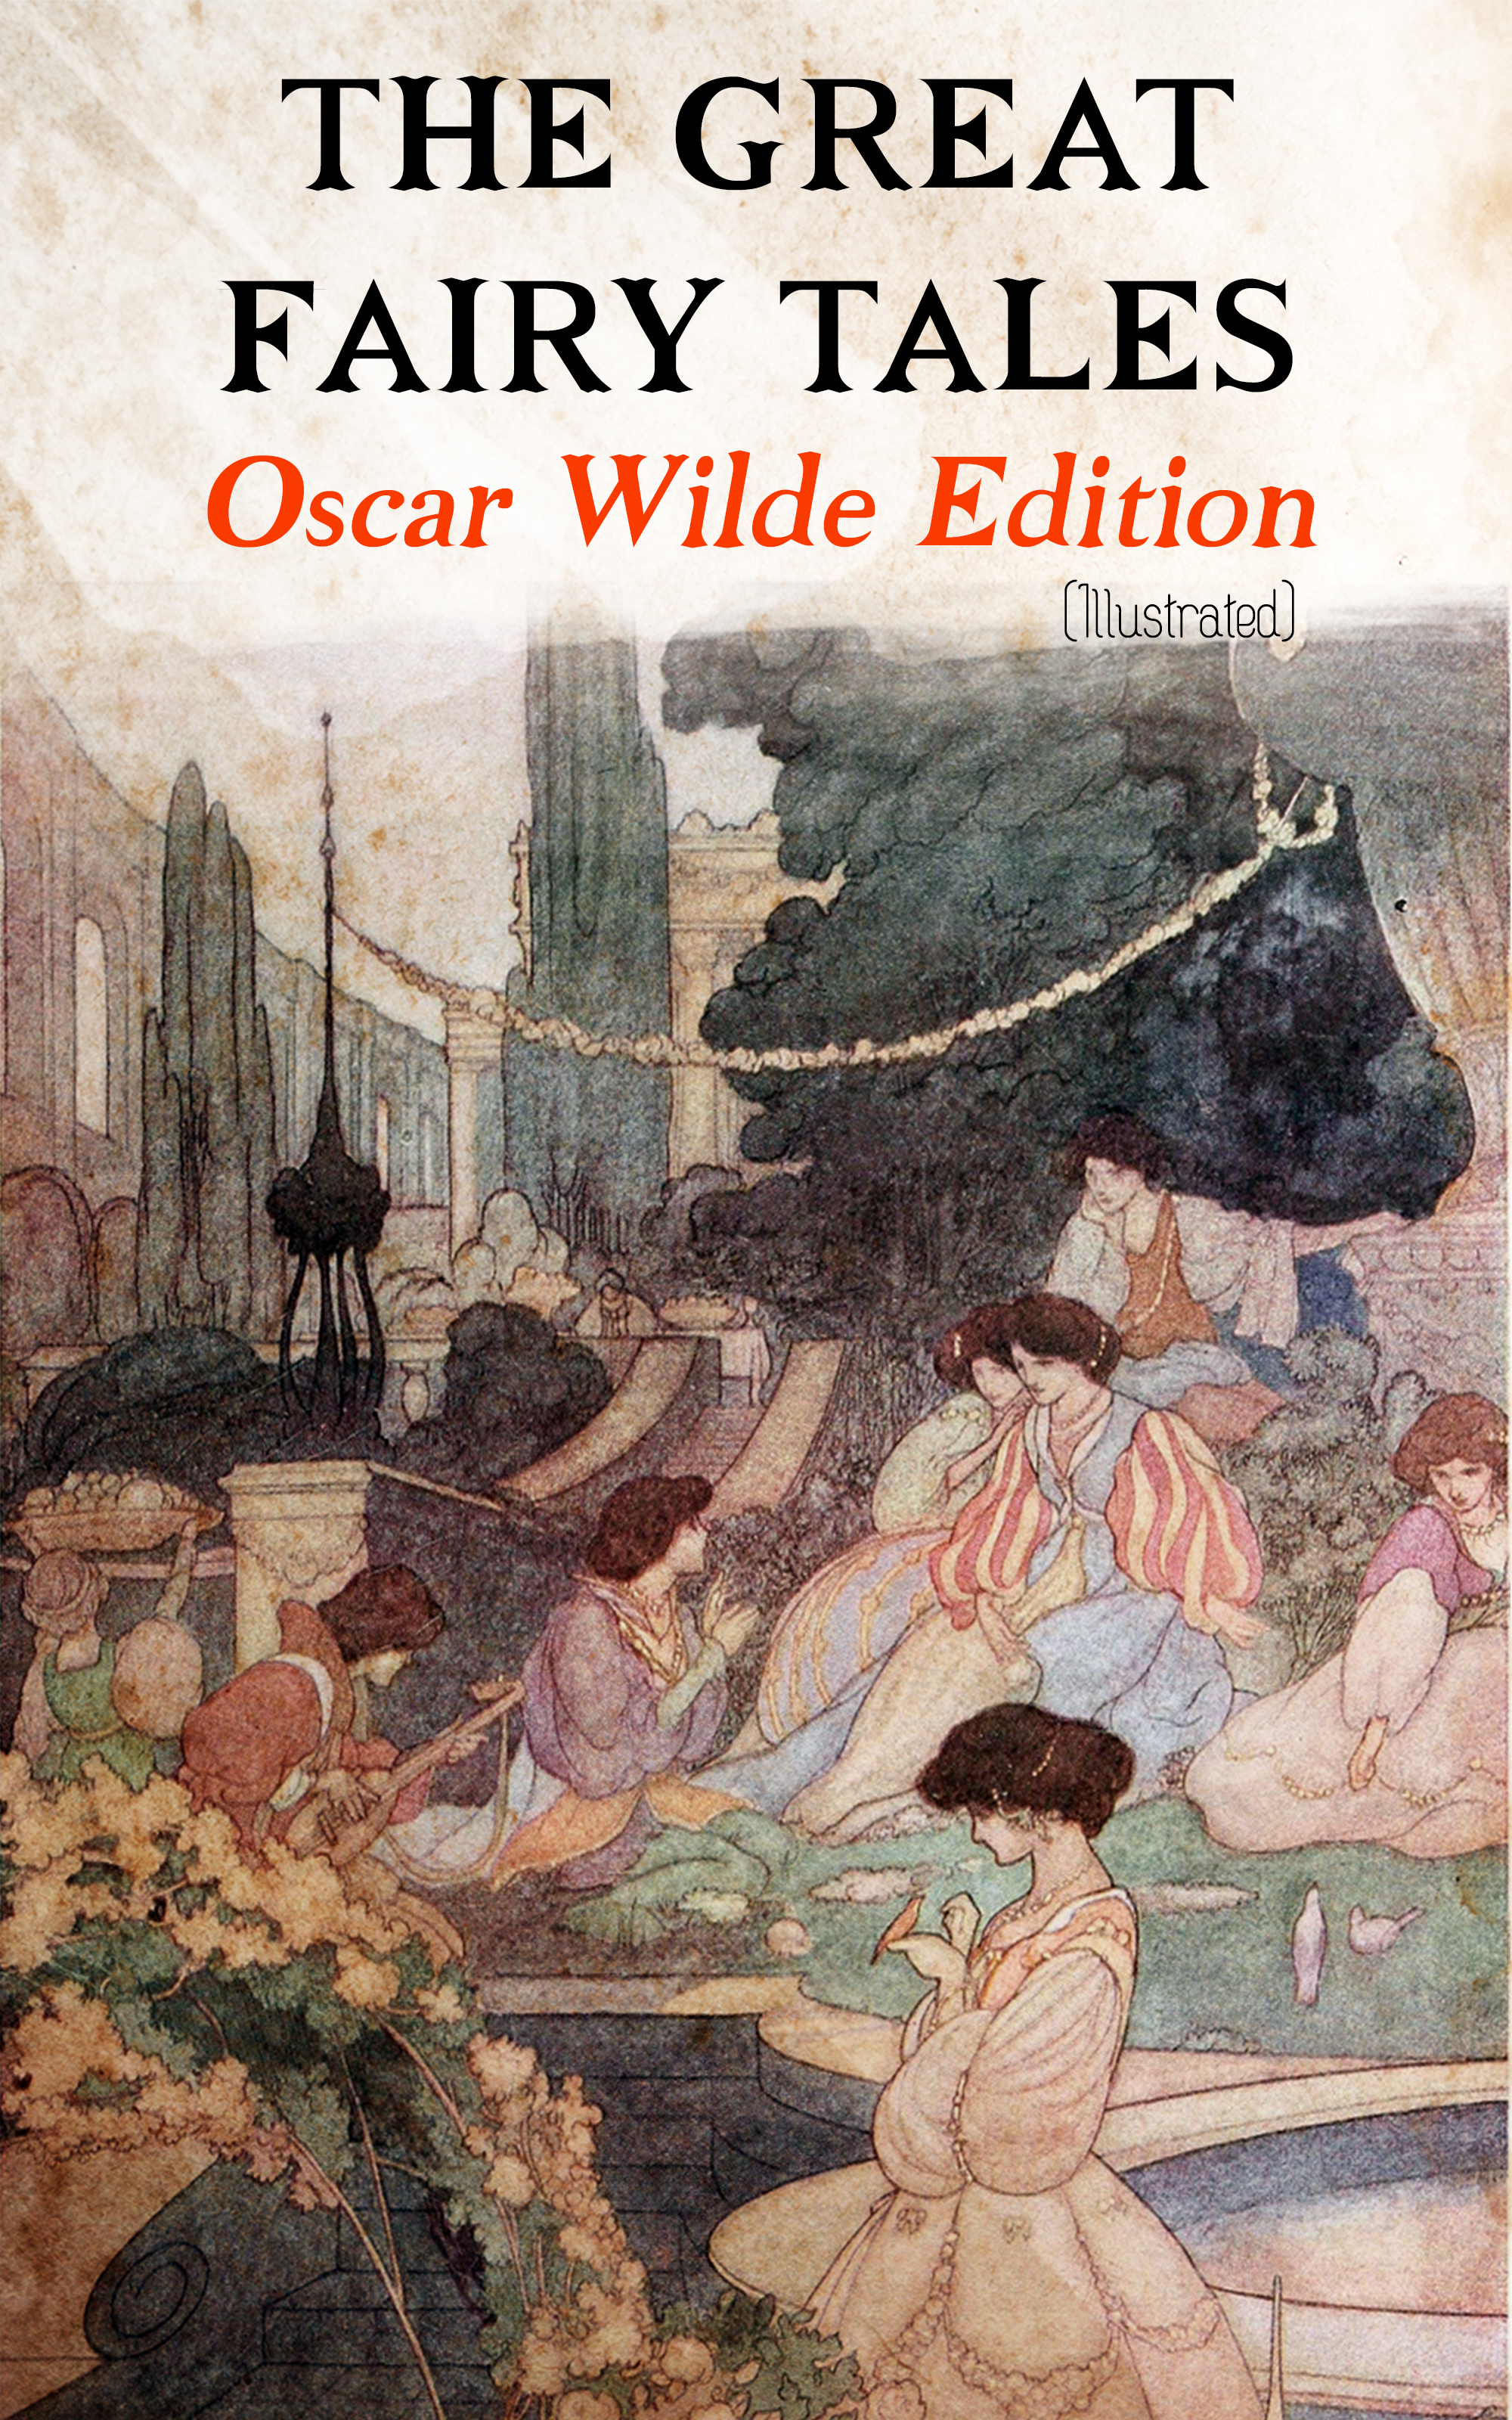 the great fairy tales oscar wilde edition illustrated